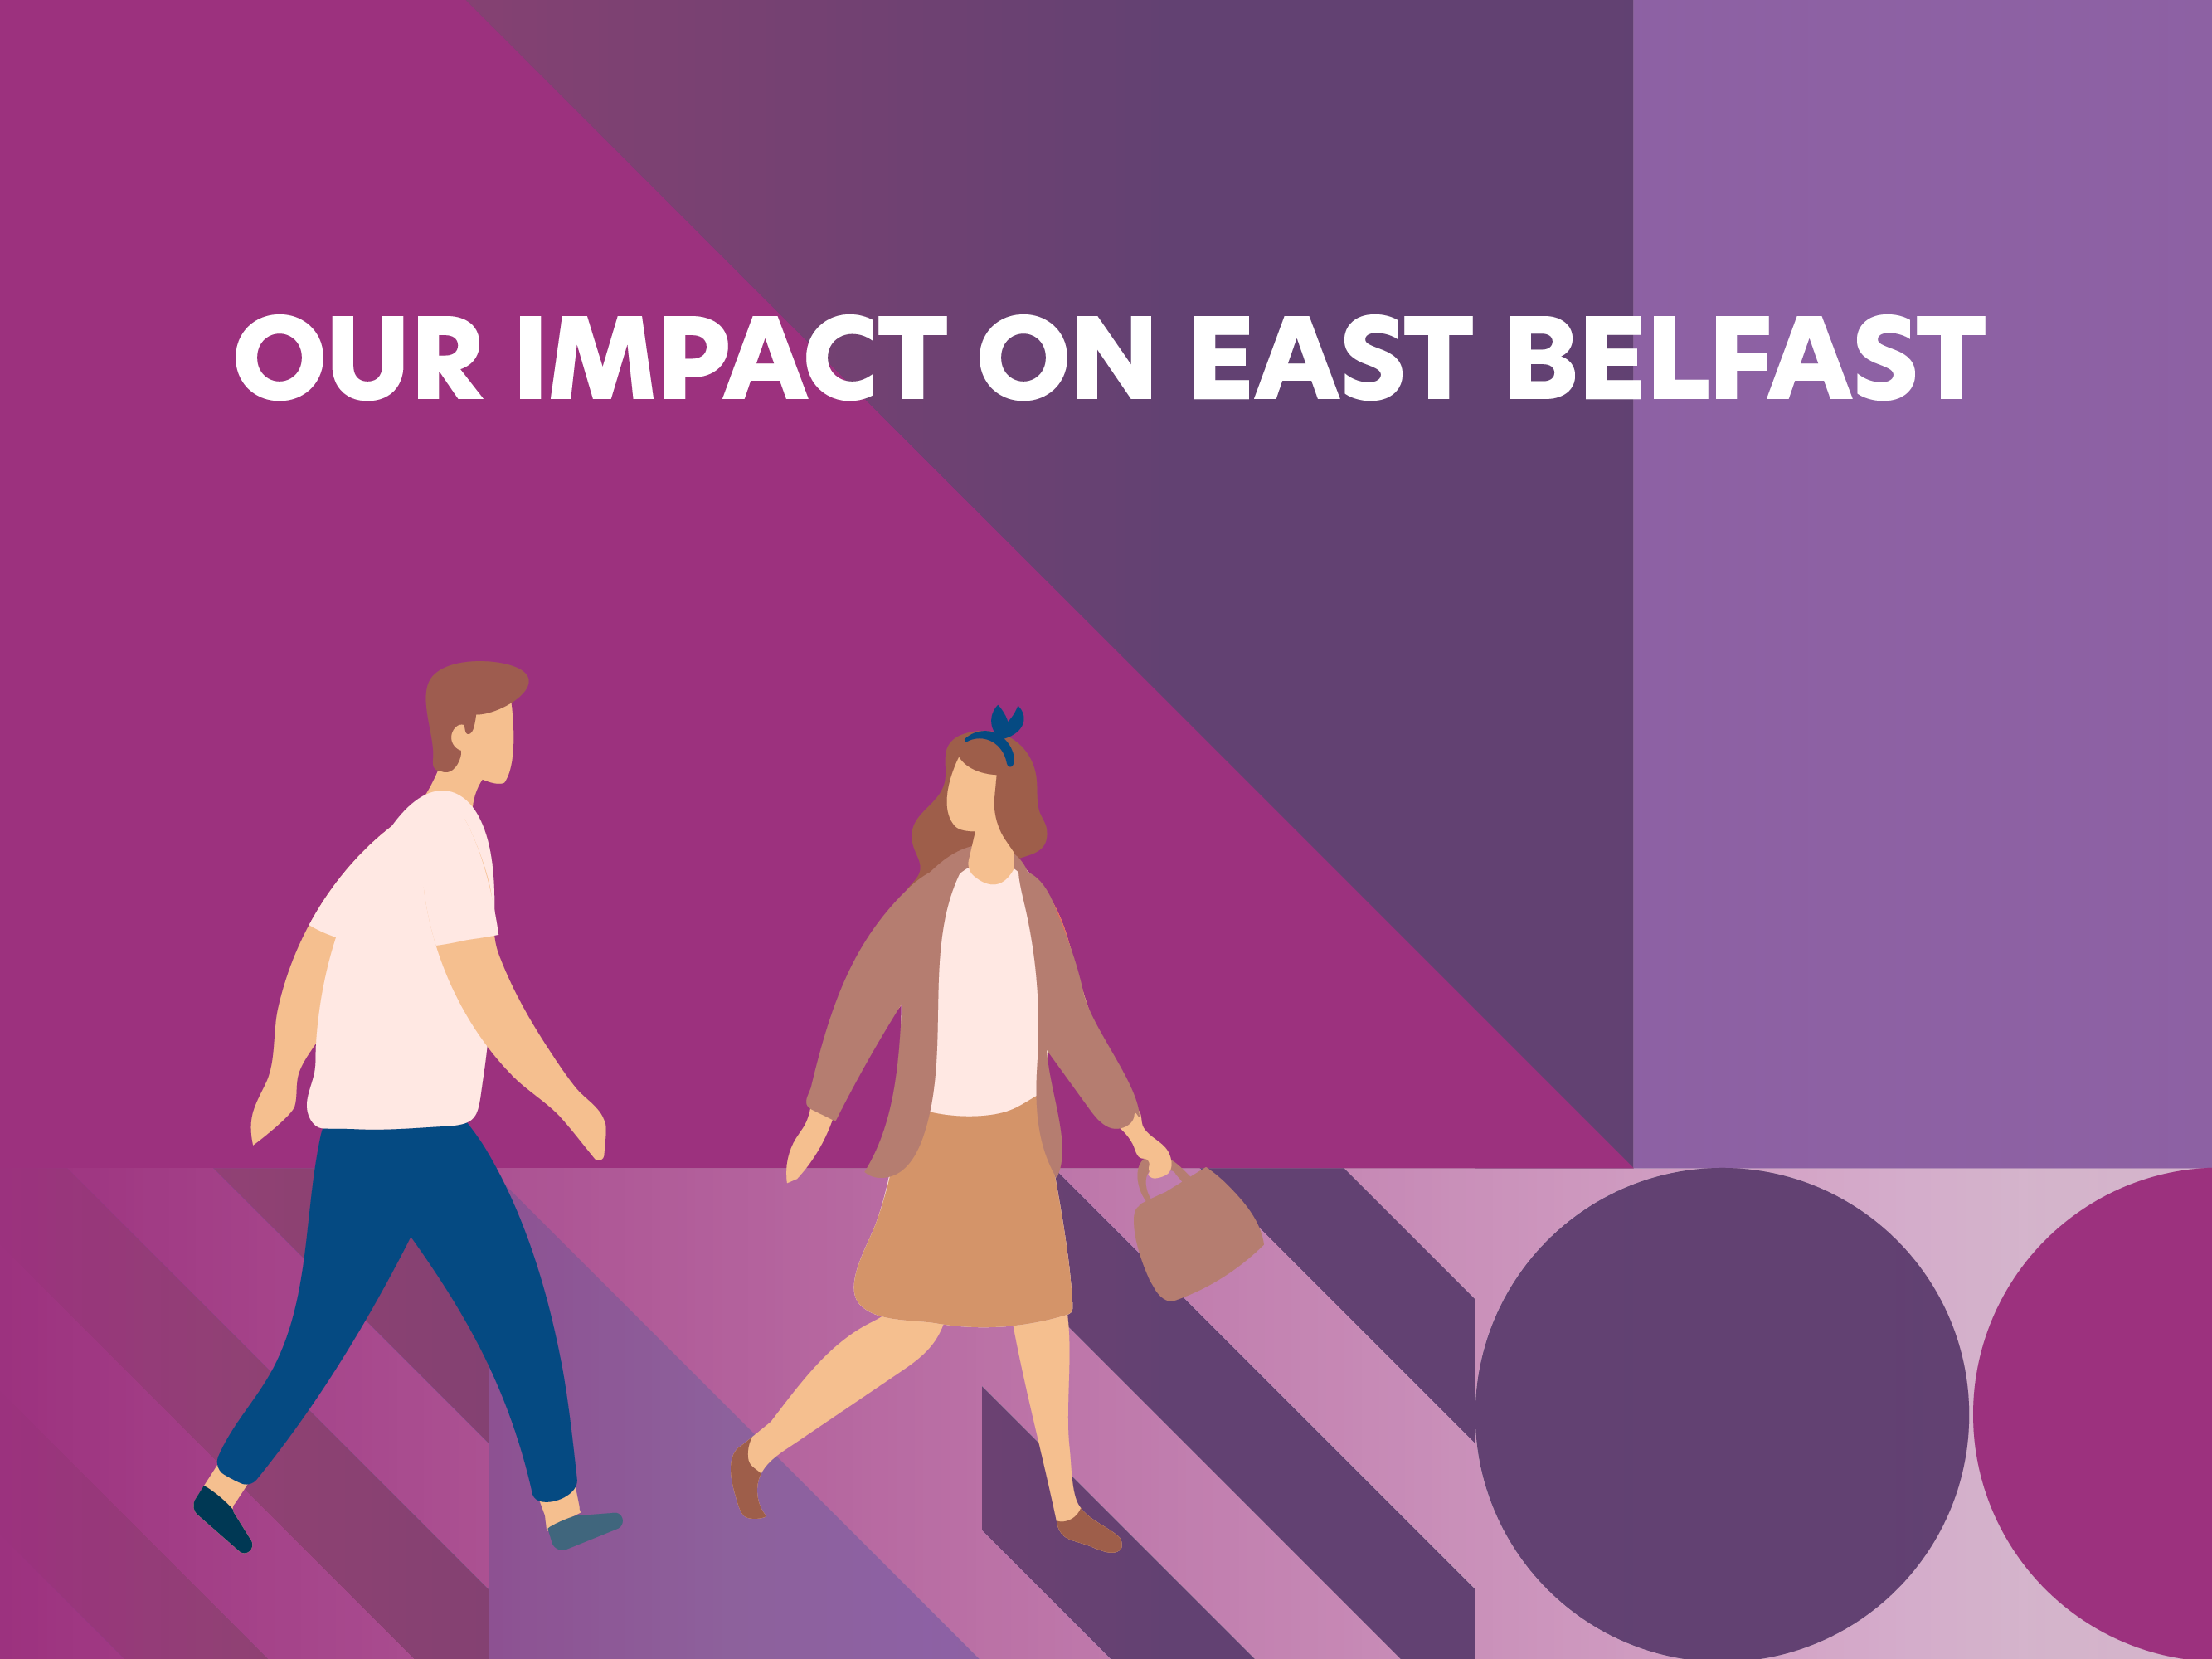 Our Impact on East Belfast